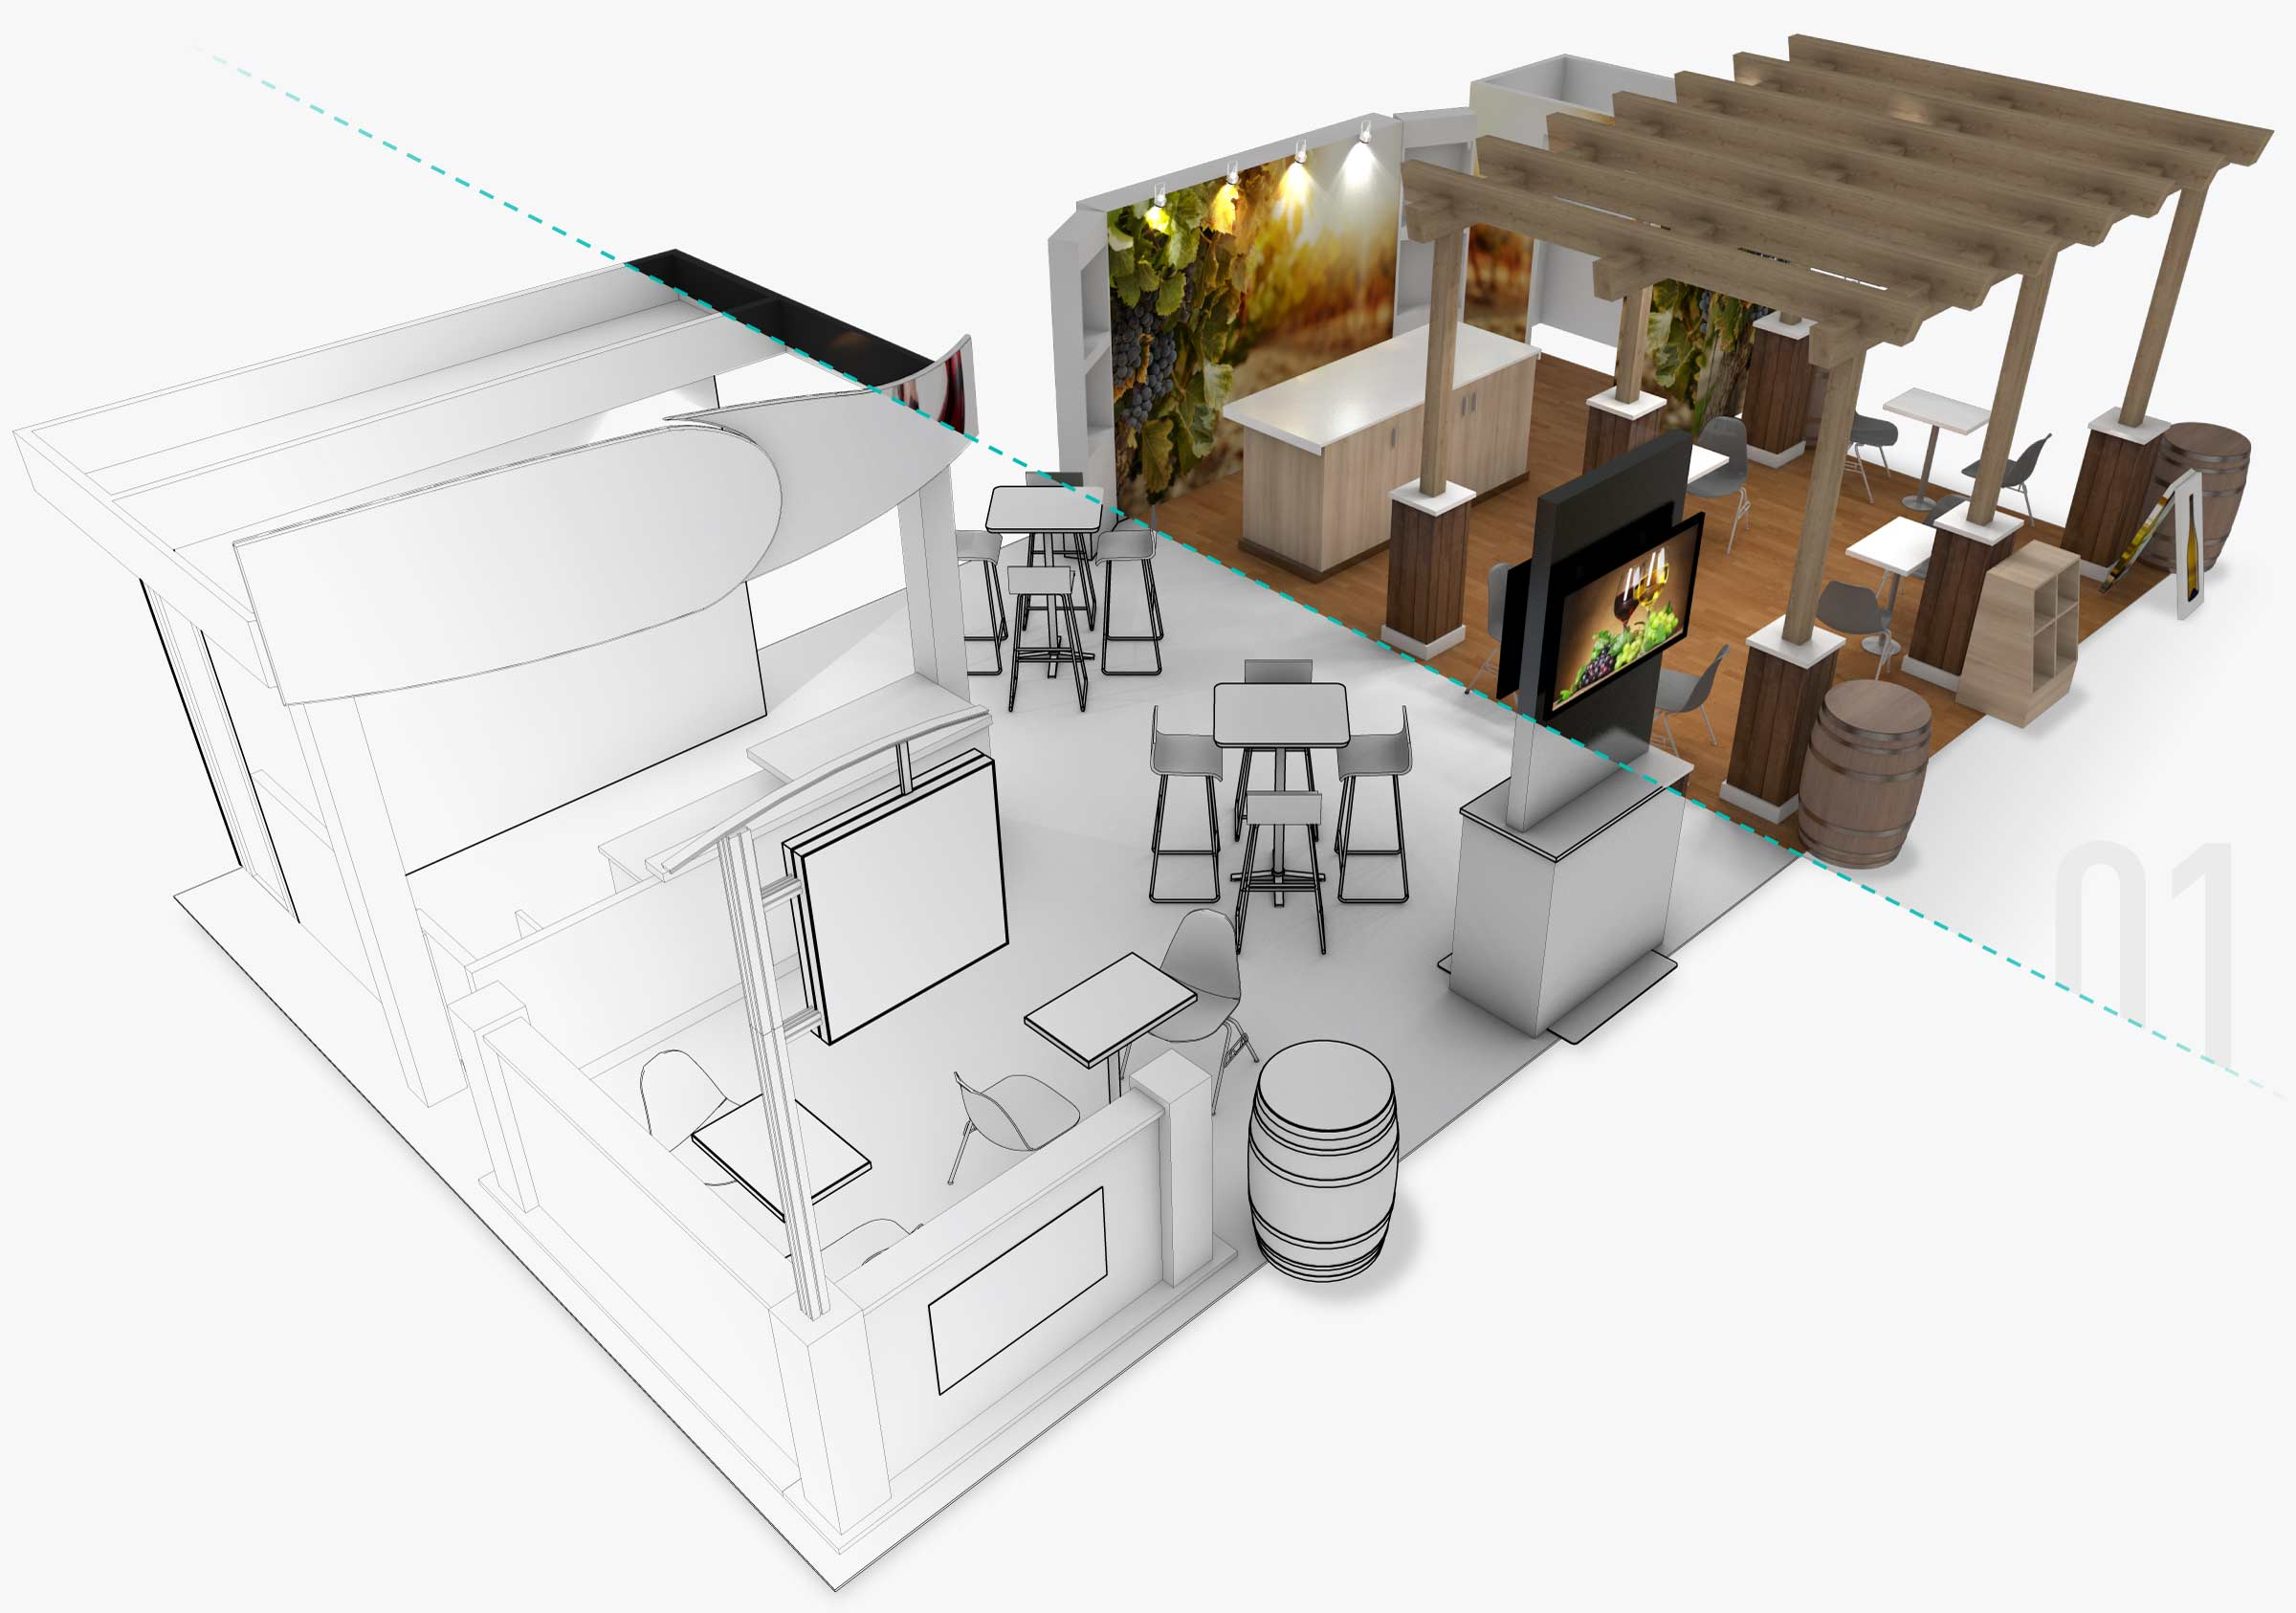 Sketch/model and rendering of trade show booth